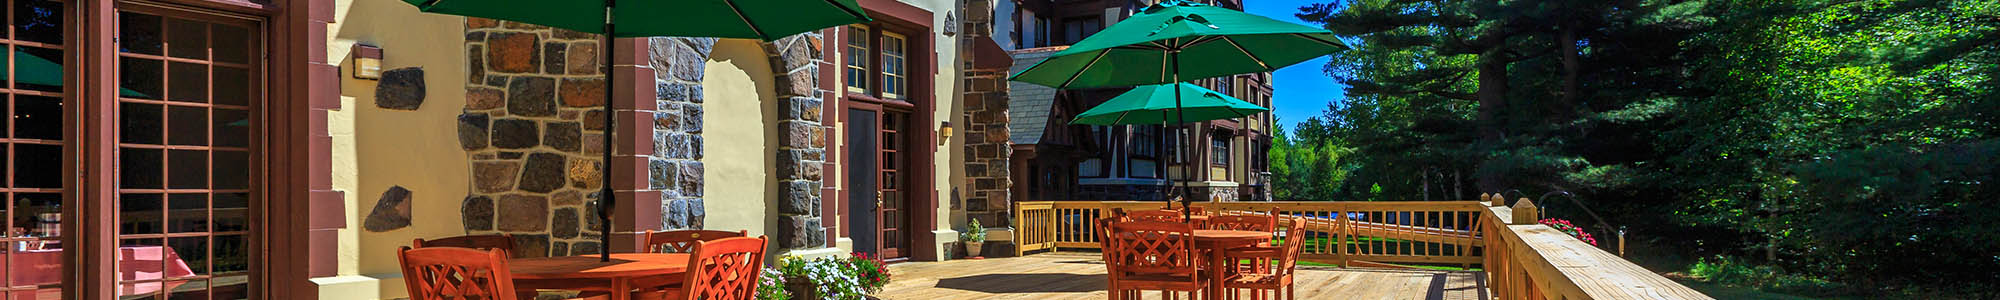 Saranac Village at Will Rogers offers excellent dining options in Saranac Lake